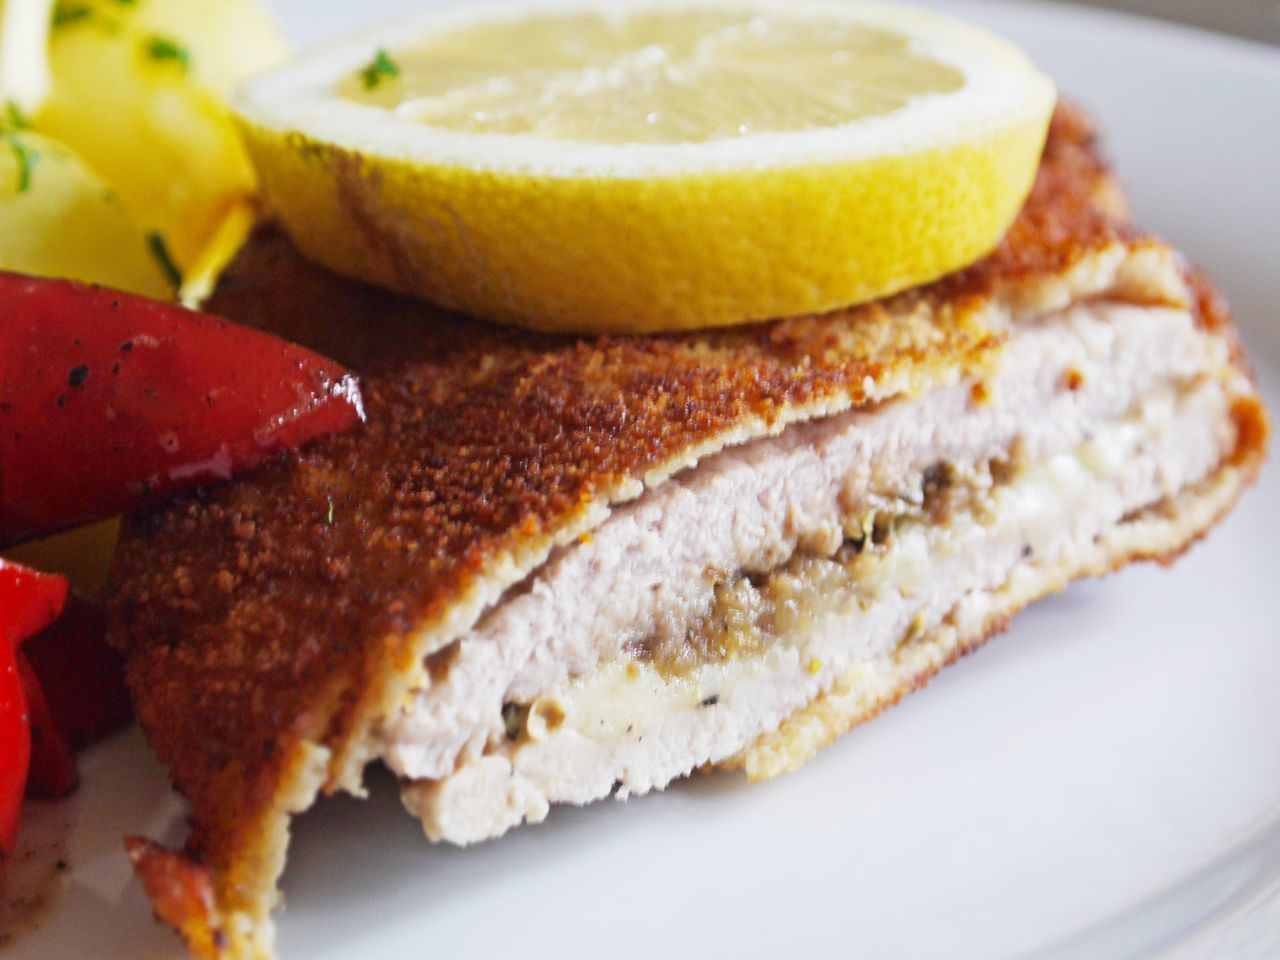 Bread Breaded Cutlet Close-up Cordon Bleu Day Food Food And Drink French Food Freshness Indoors  Lemon Slice No People Plate Ready-to-eat Sandwich Schnitzel SLICE